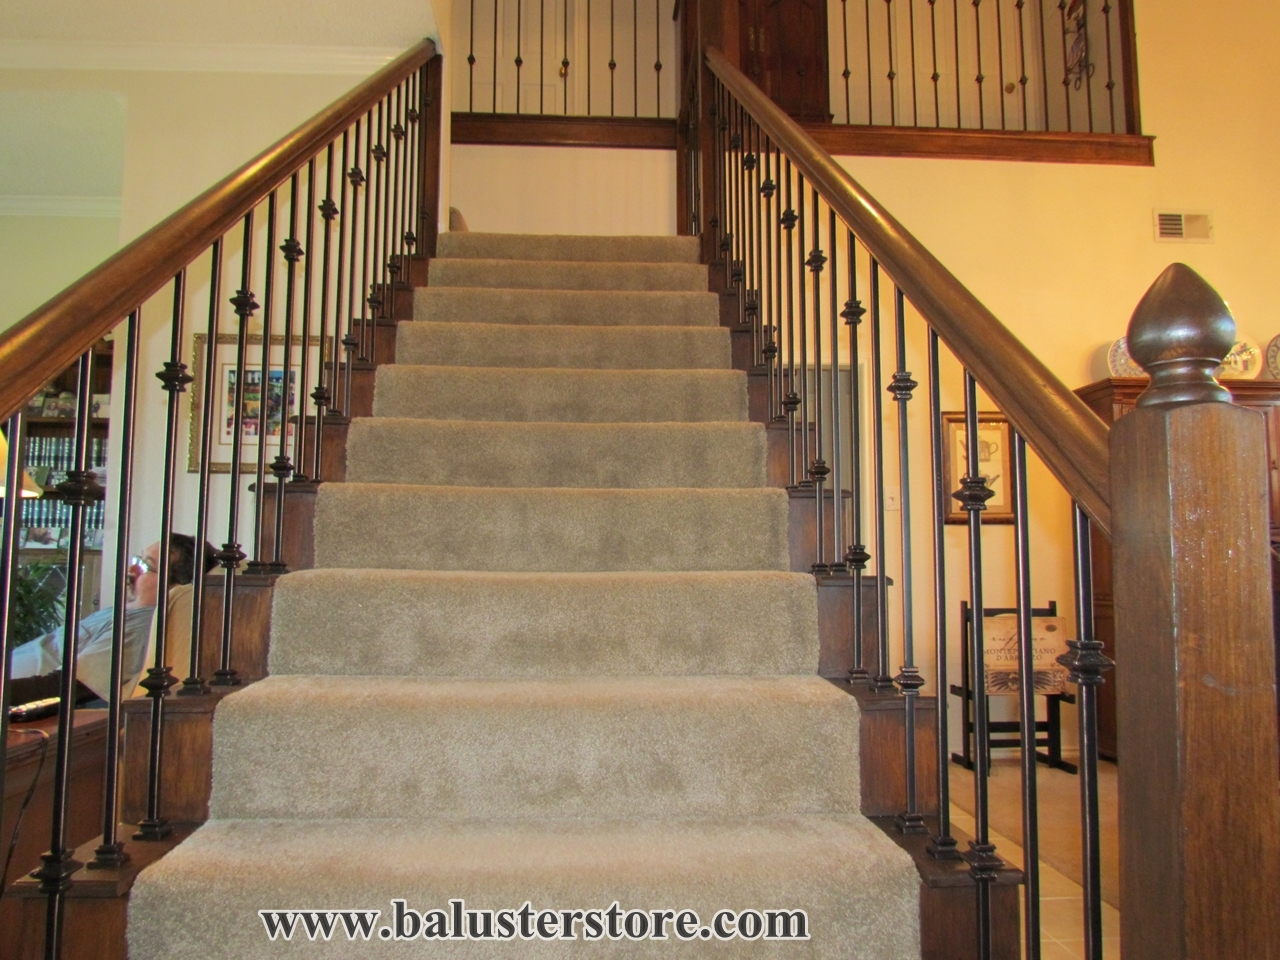 Iron Balusters For Stairs And Balconies – Balusterstore1   Metal Staircases And Balconies